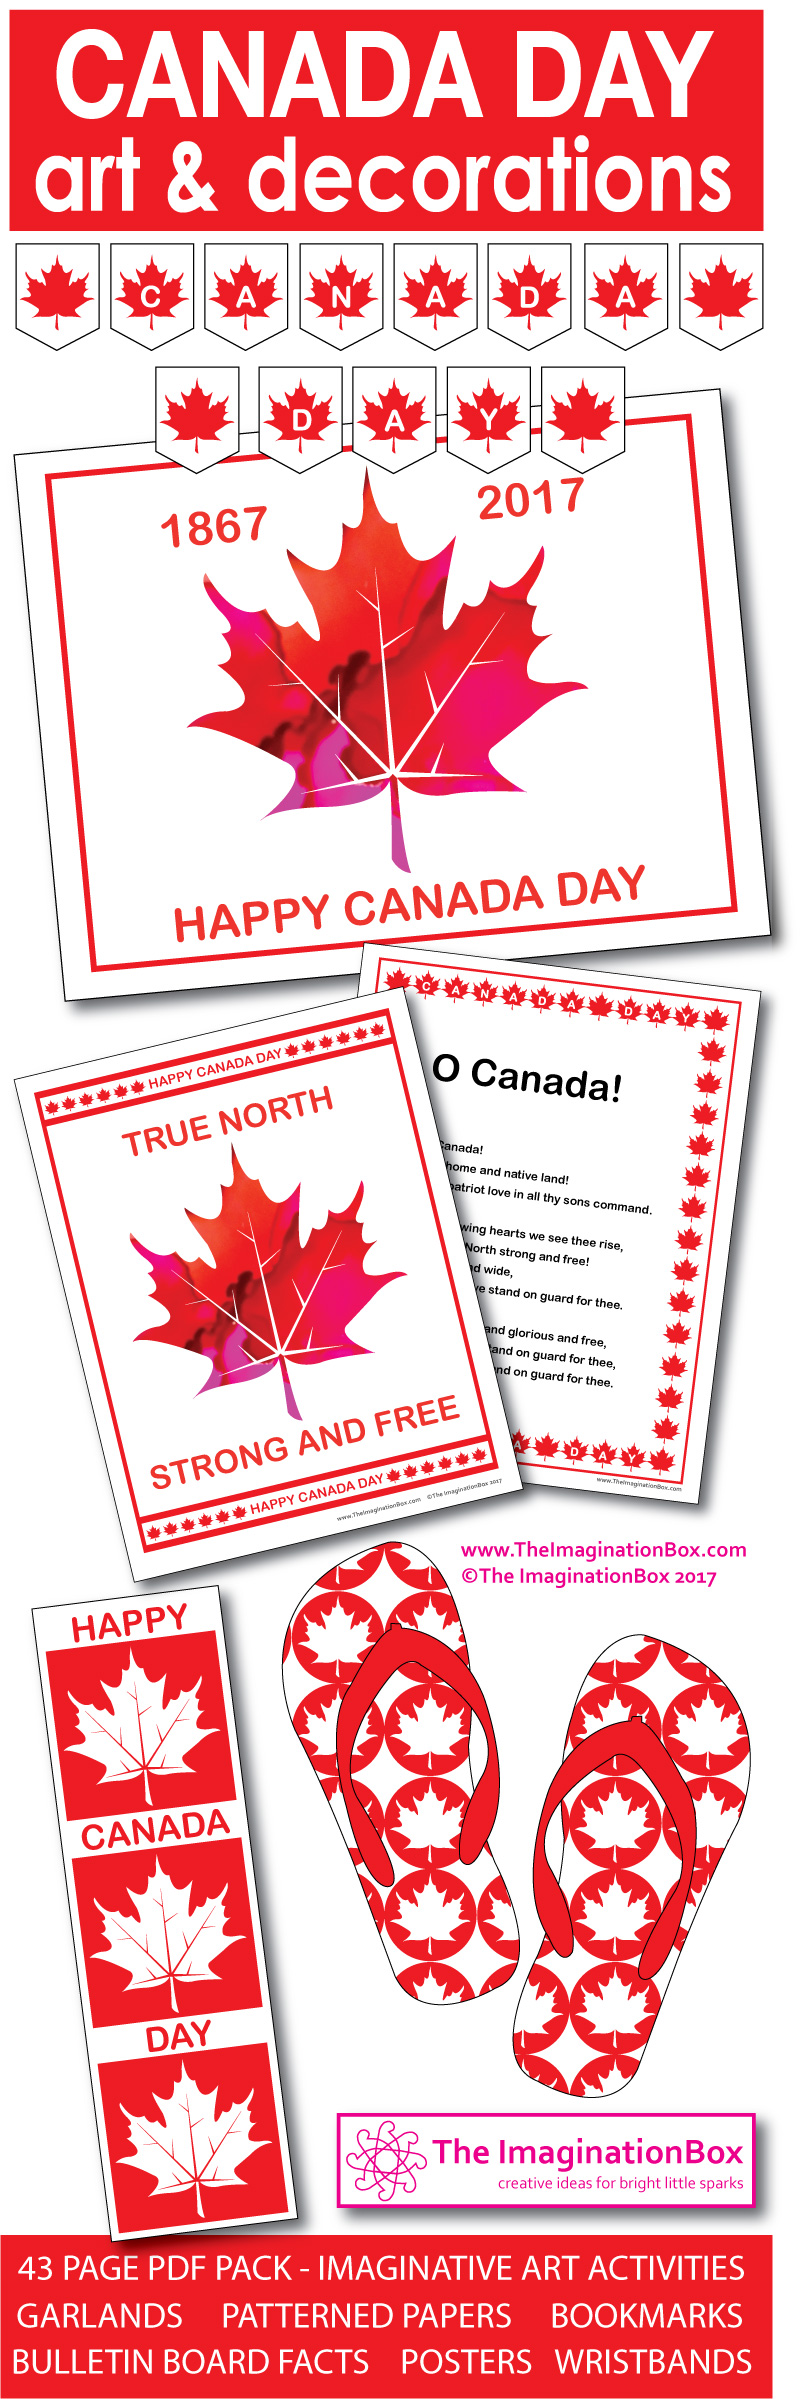 Canada Day Coloring Pages - Maple Leaf Art and Decor | Pinterest ...